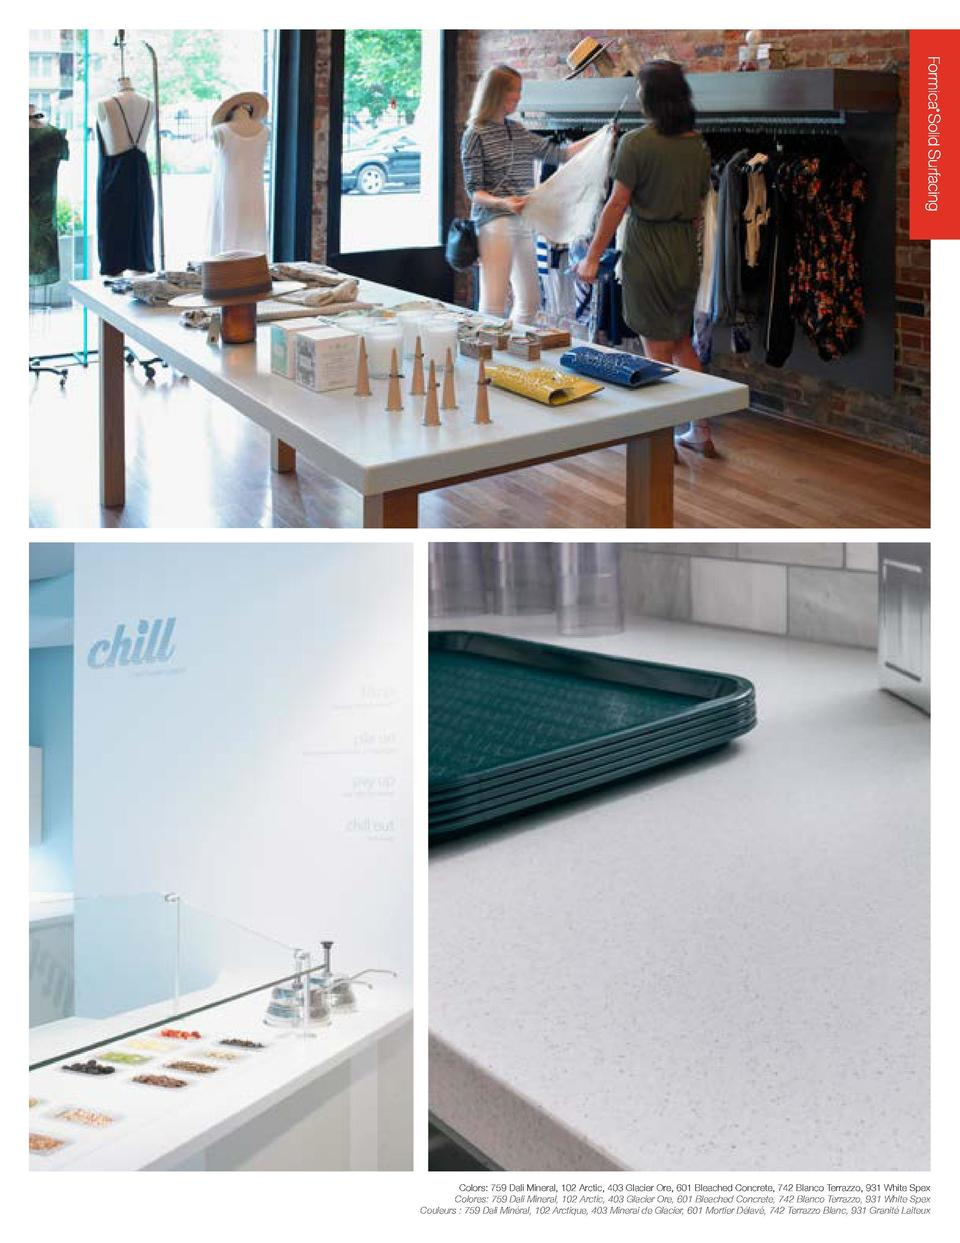 Formica    Solid Surfacing Superficies homog  neas no porosas by Formica Group  As tough as it is beautiful, Formica   Sol...